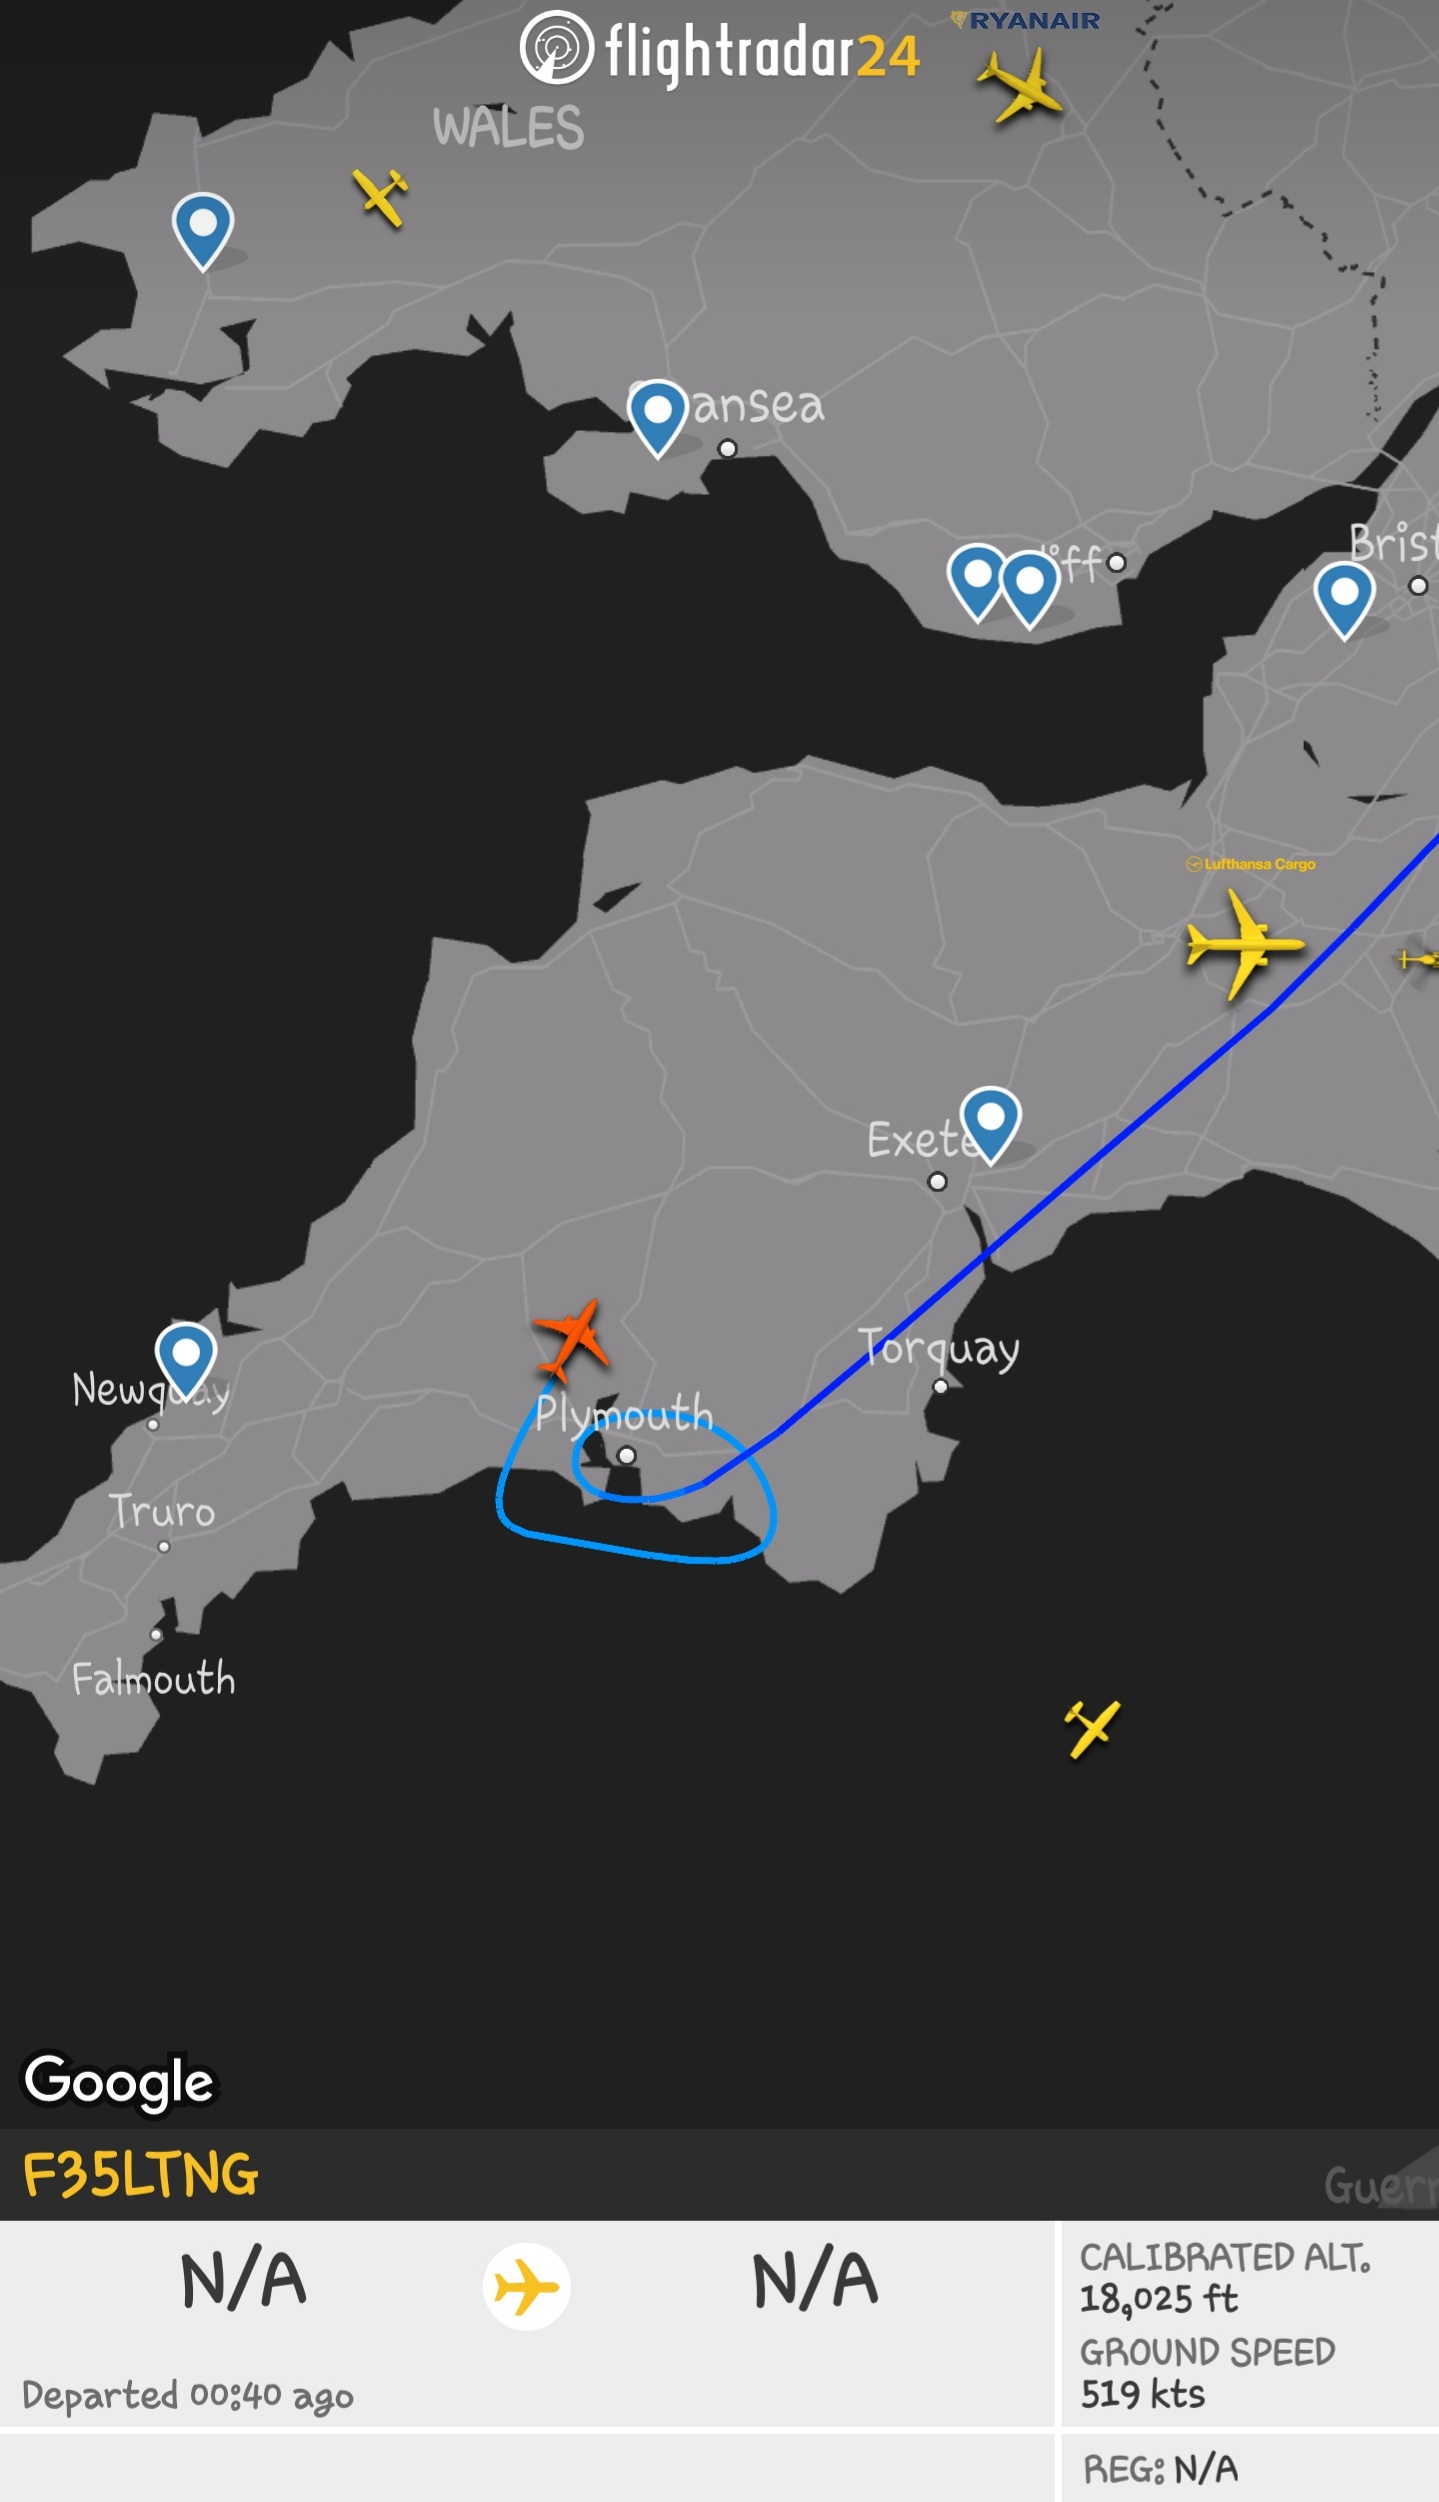 Screenshot_20210412-194808_Flightradar24.jpg